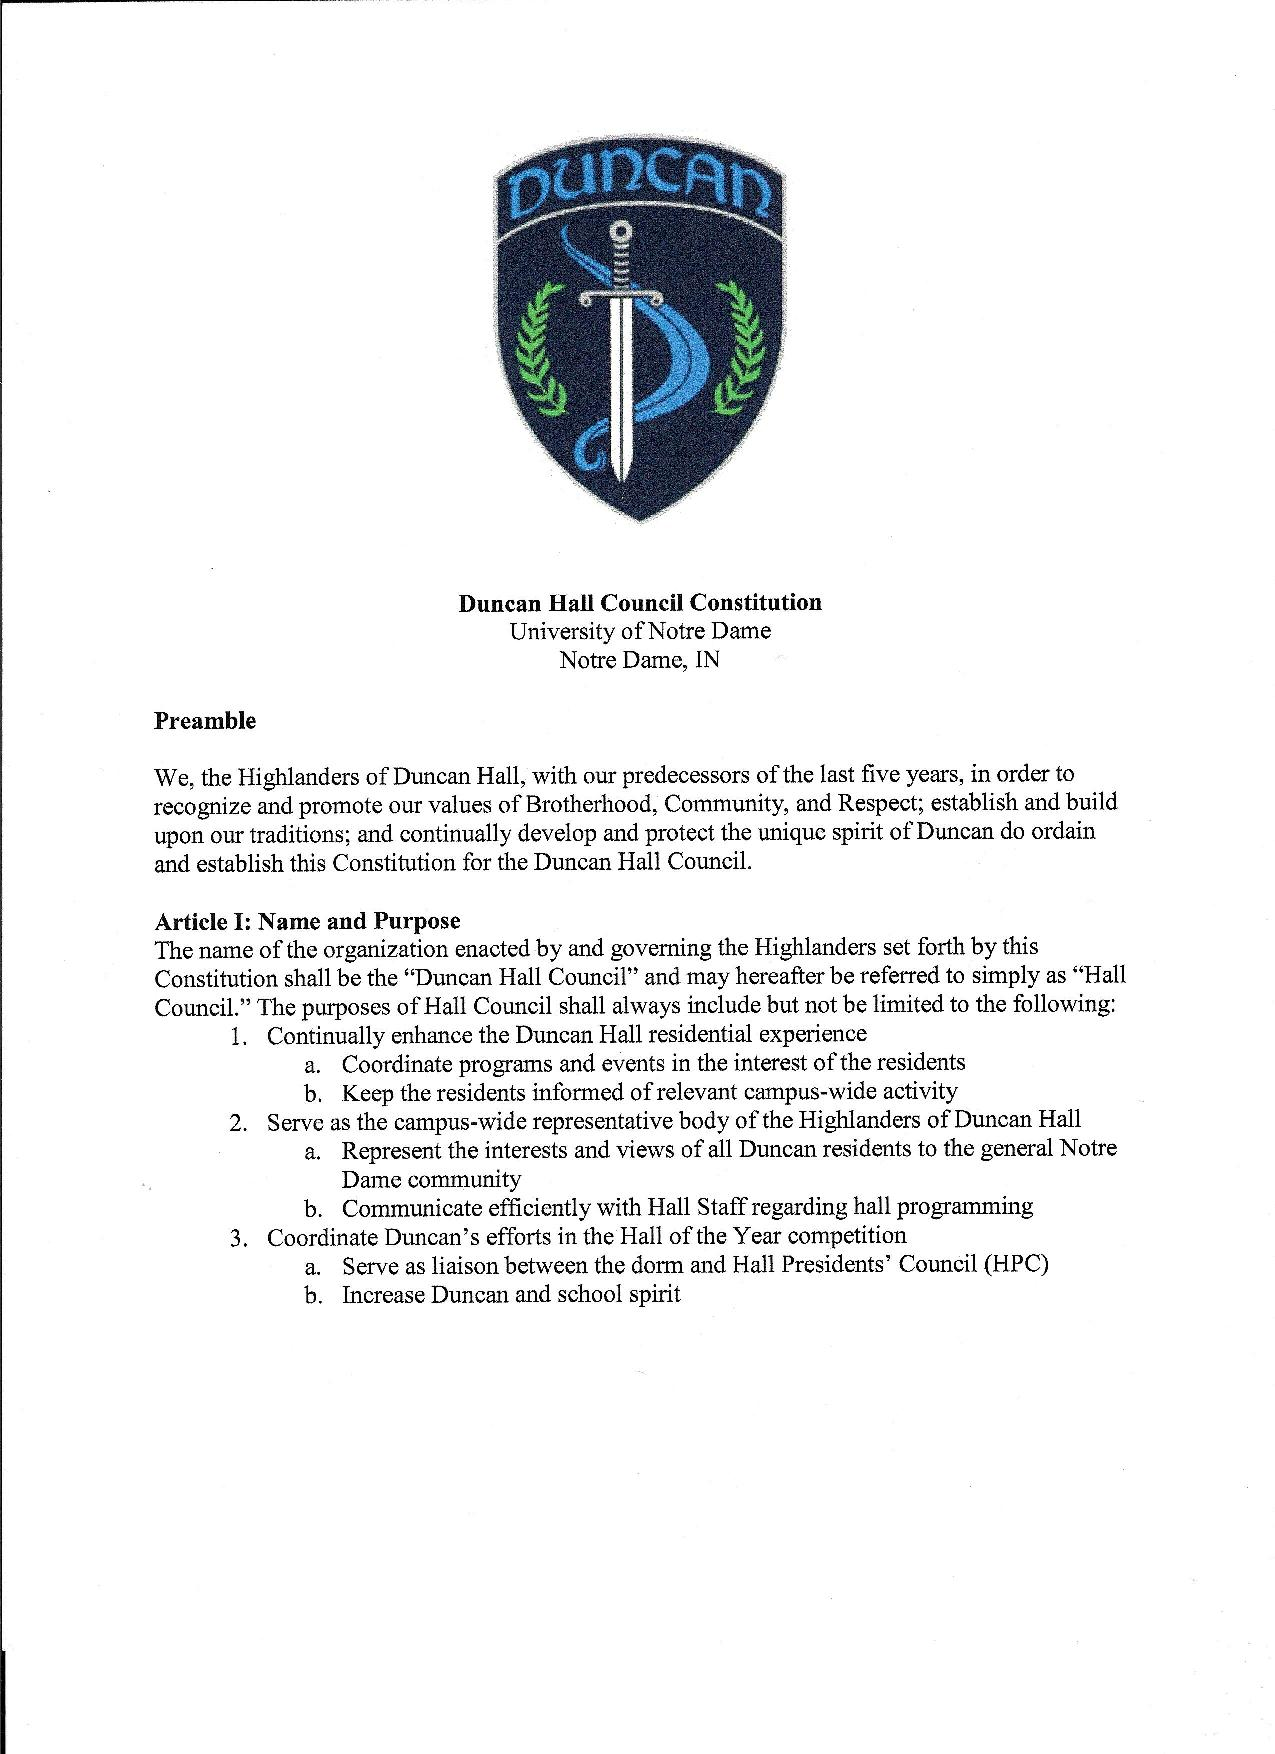 Duncan Hall Constitution April 2014-1-page-001.jpg